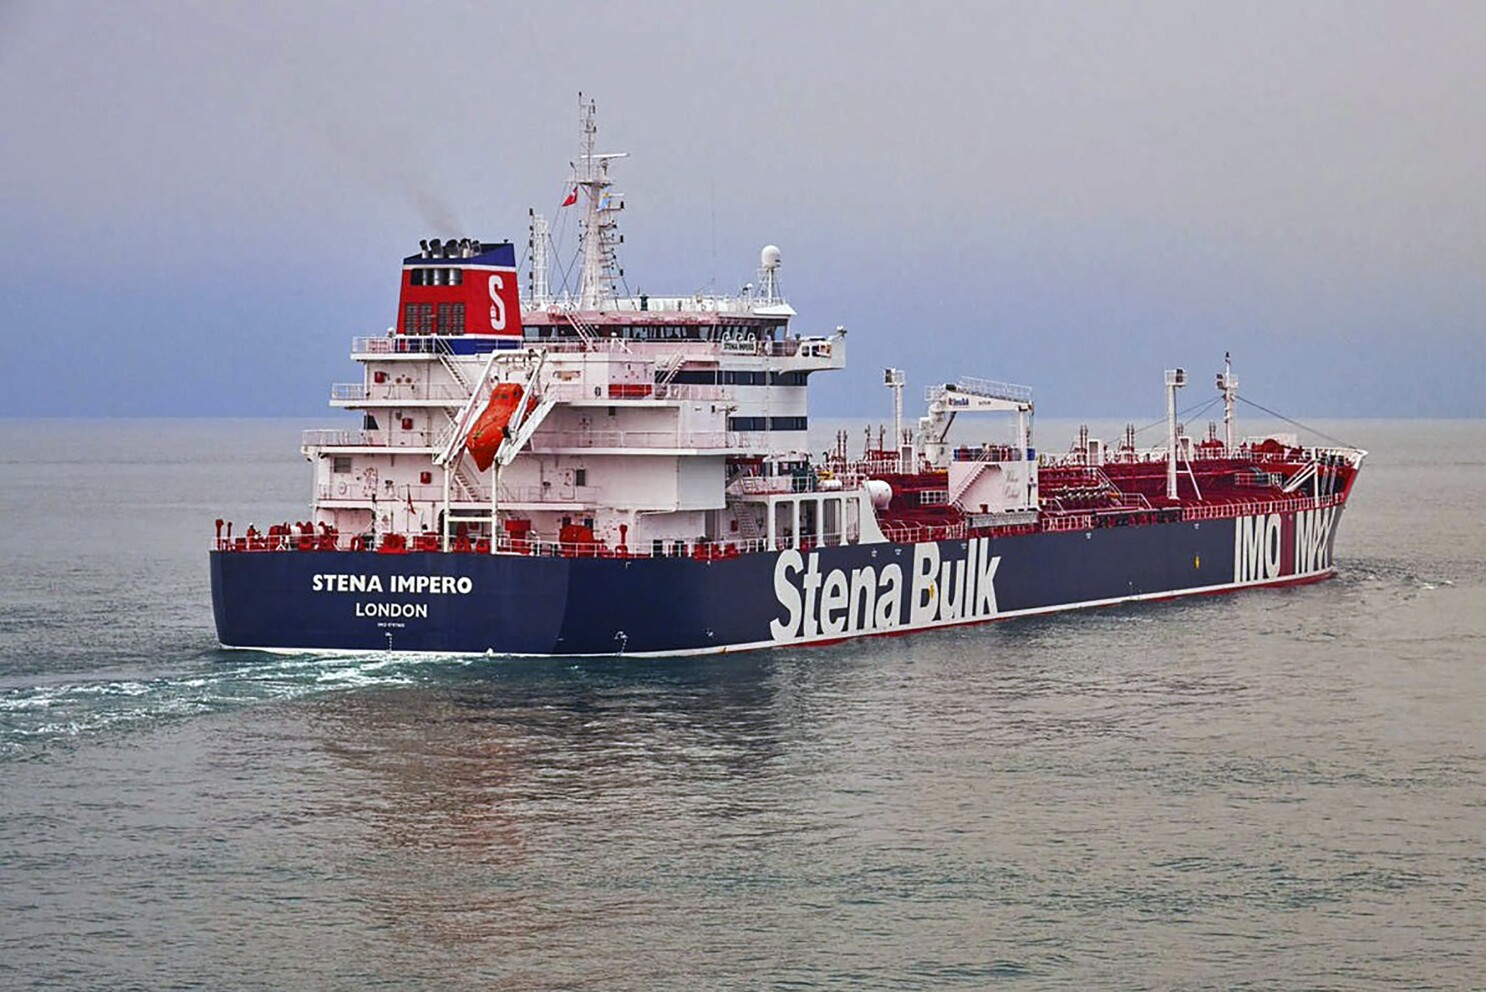 Iran detains two British tankers in Strait of Hormuz, raising new fears of military confrontation